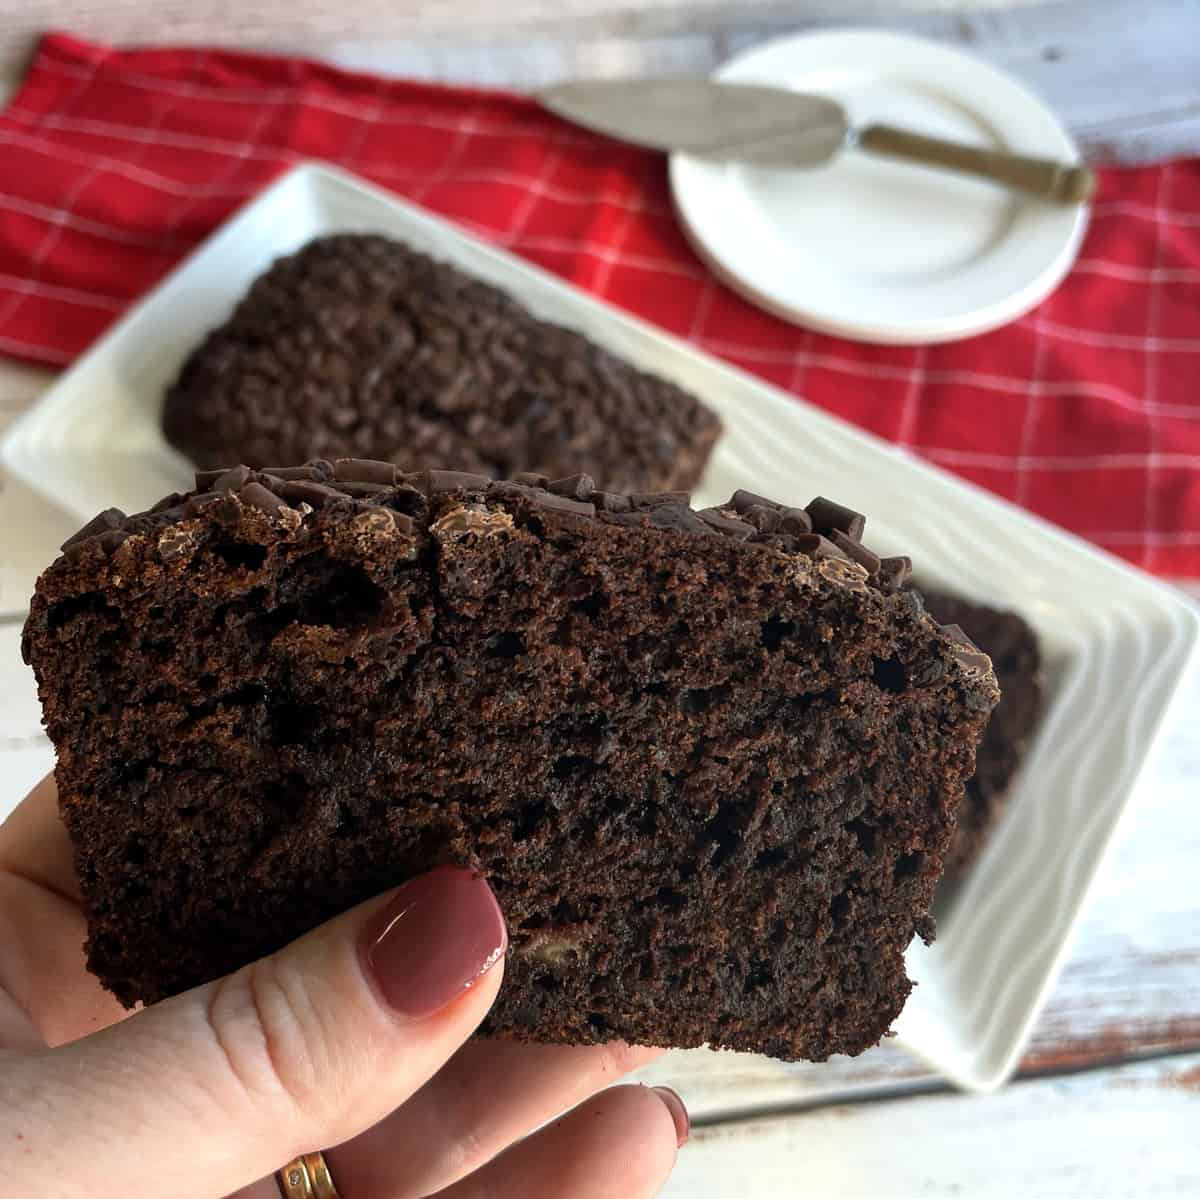 A hand holding a slice of double chocolate banana loaf